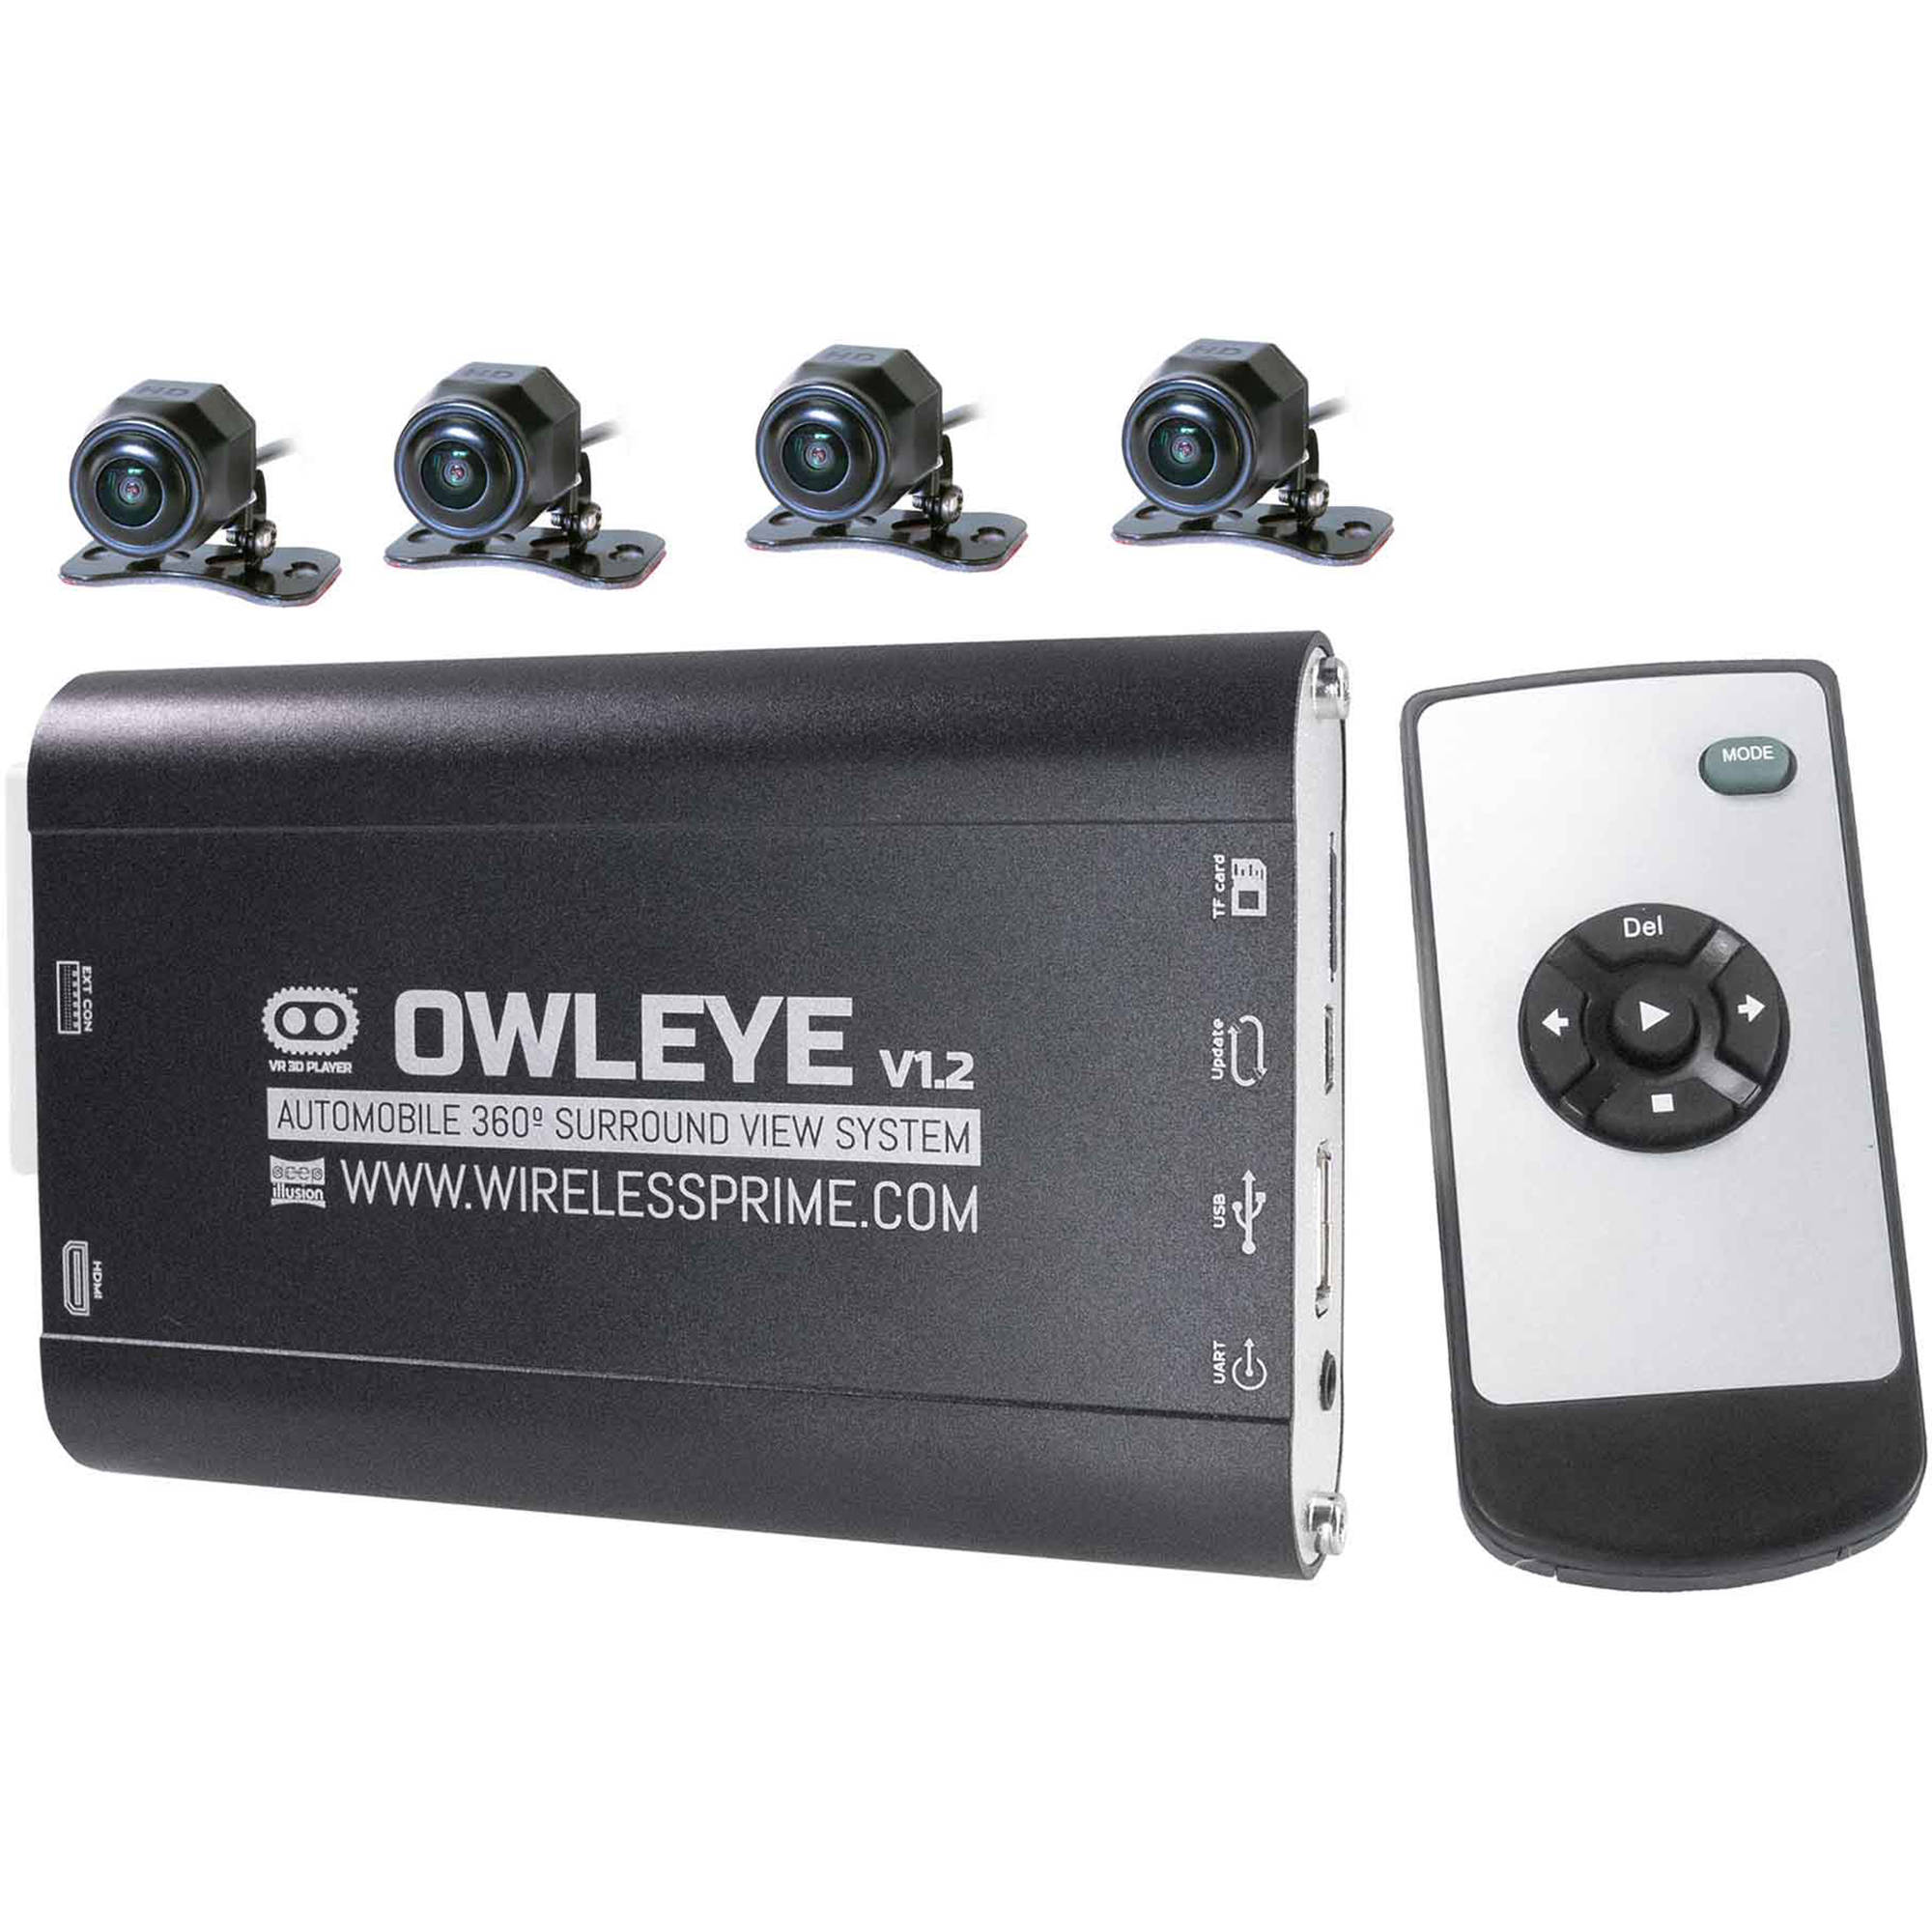 CINEGEARS OWLEYE Automobile VR 360° DVR Surround View System for Commercial  Vehicles V1 2